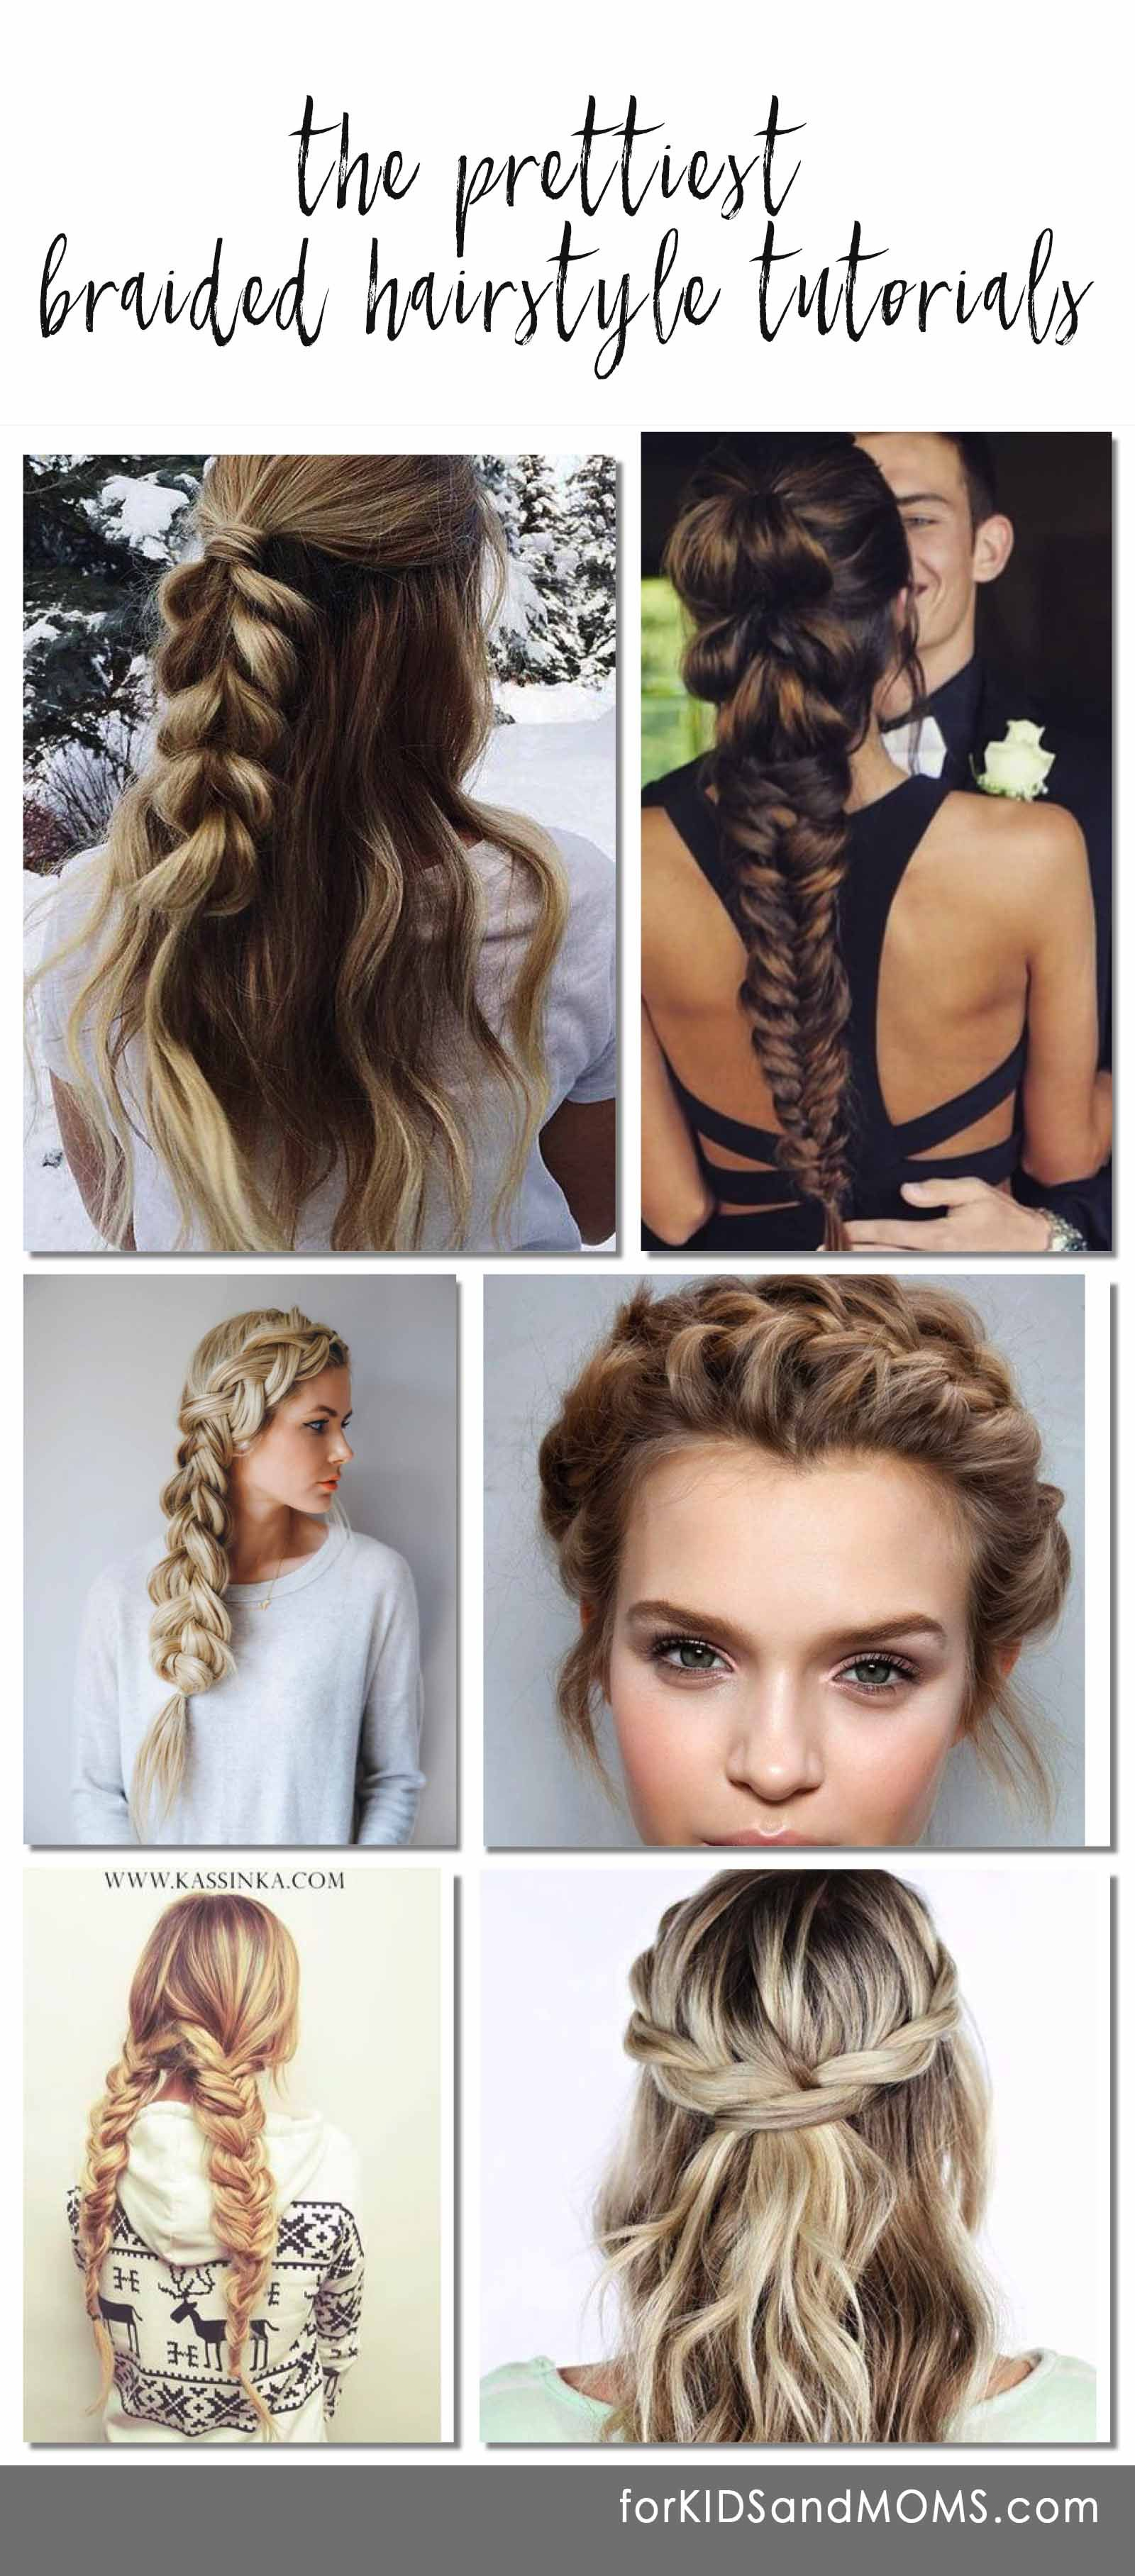 pretty braided hairstyle tutorials, all the most pinned